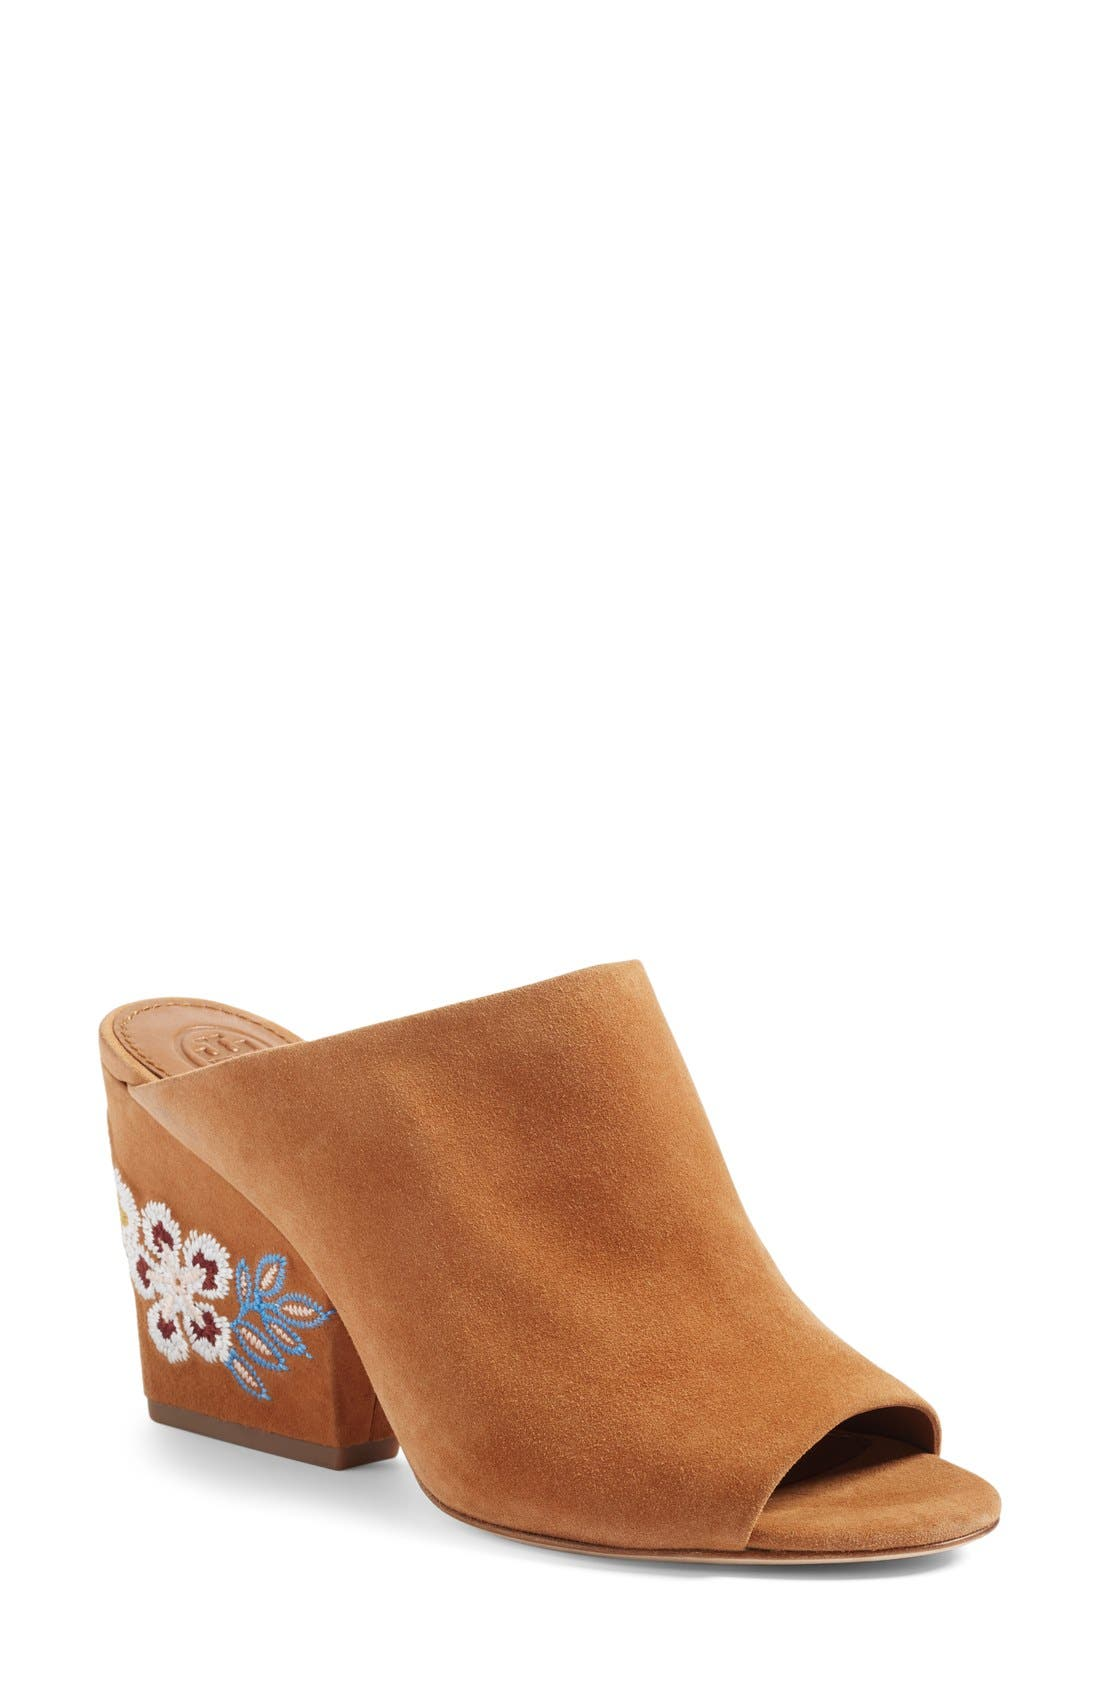 Alternate Image 1 Selected - Tory Burch Embroidered Floral Mule (Women)